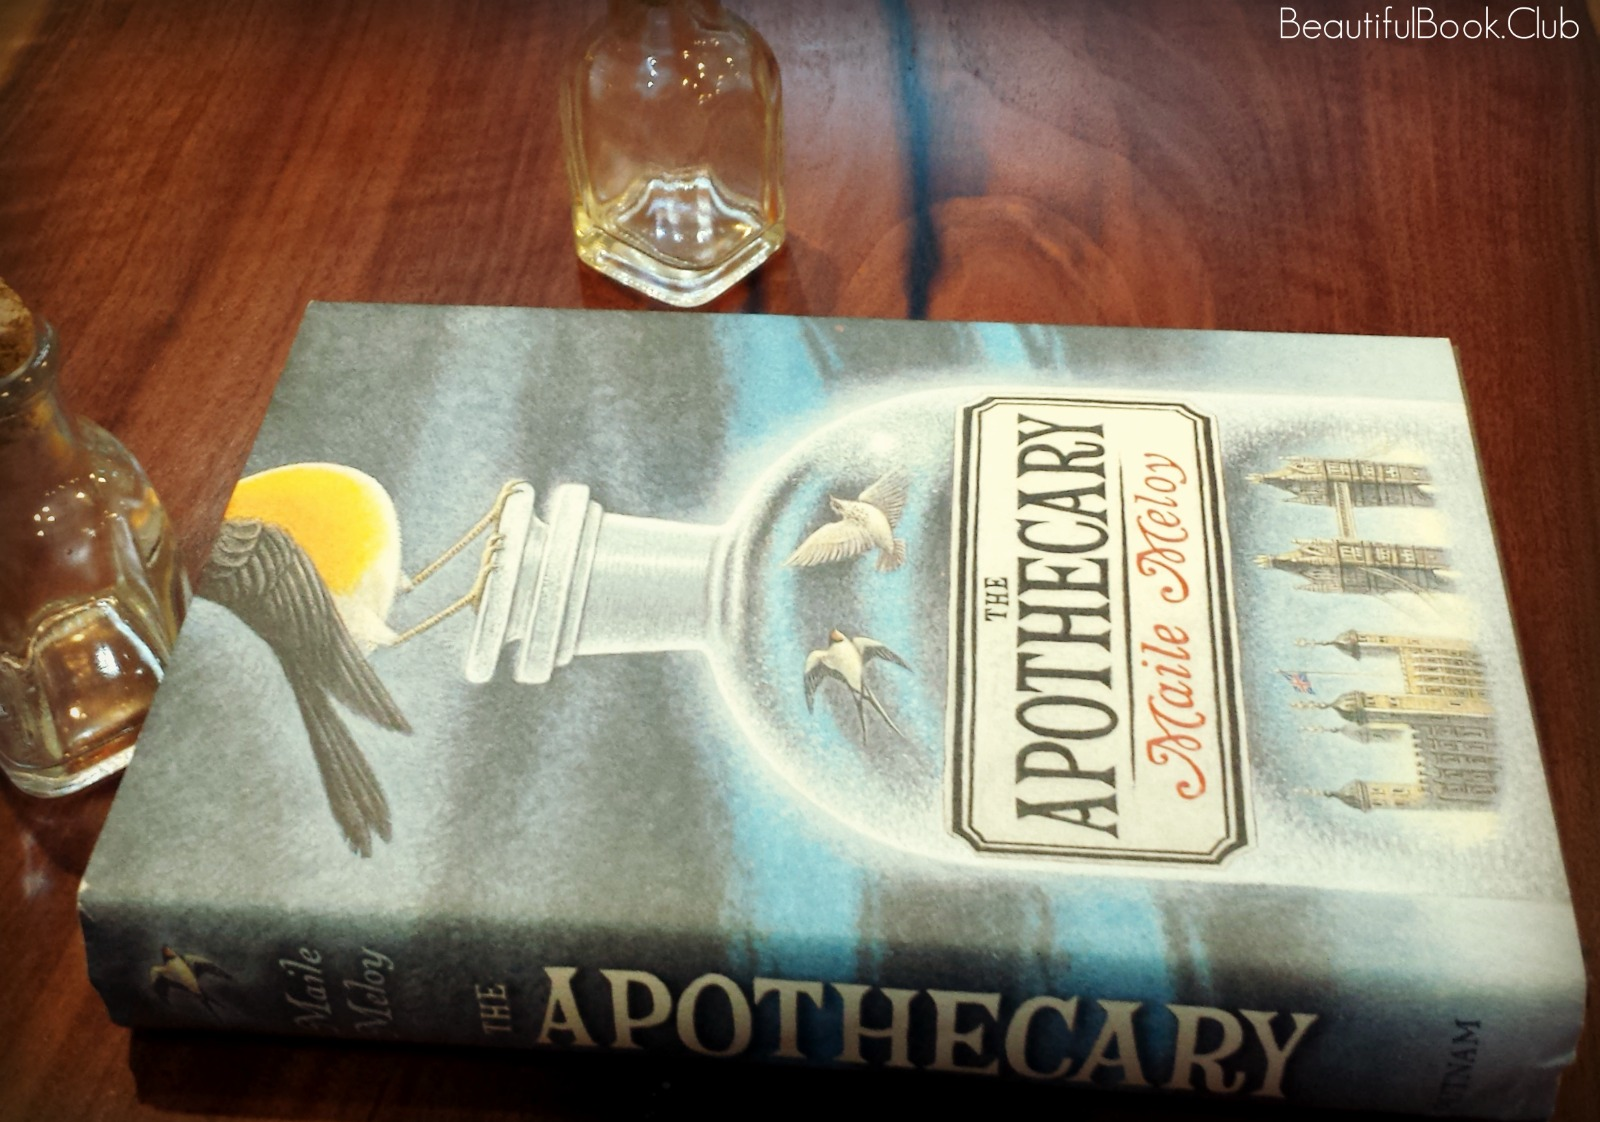 The Apothecary spine with book jacket and bottles